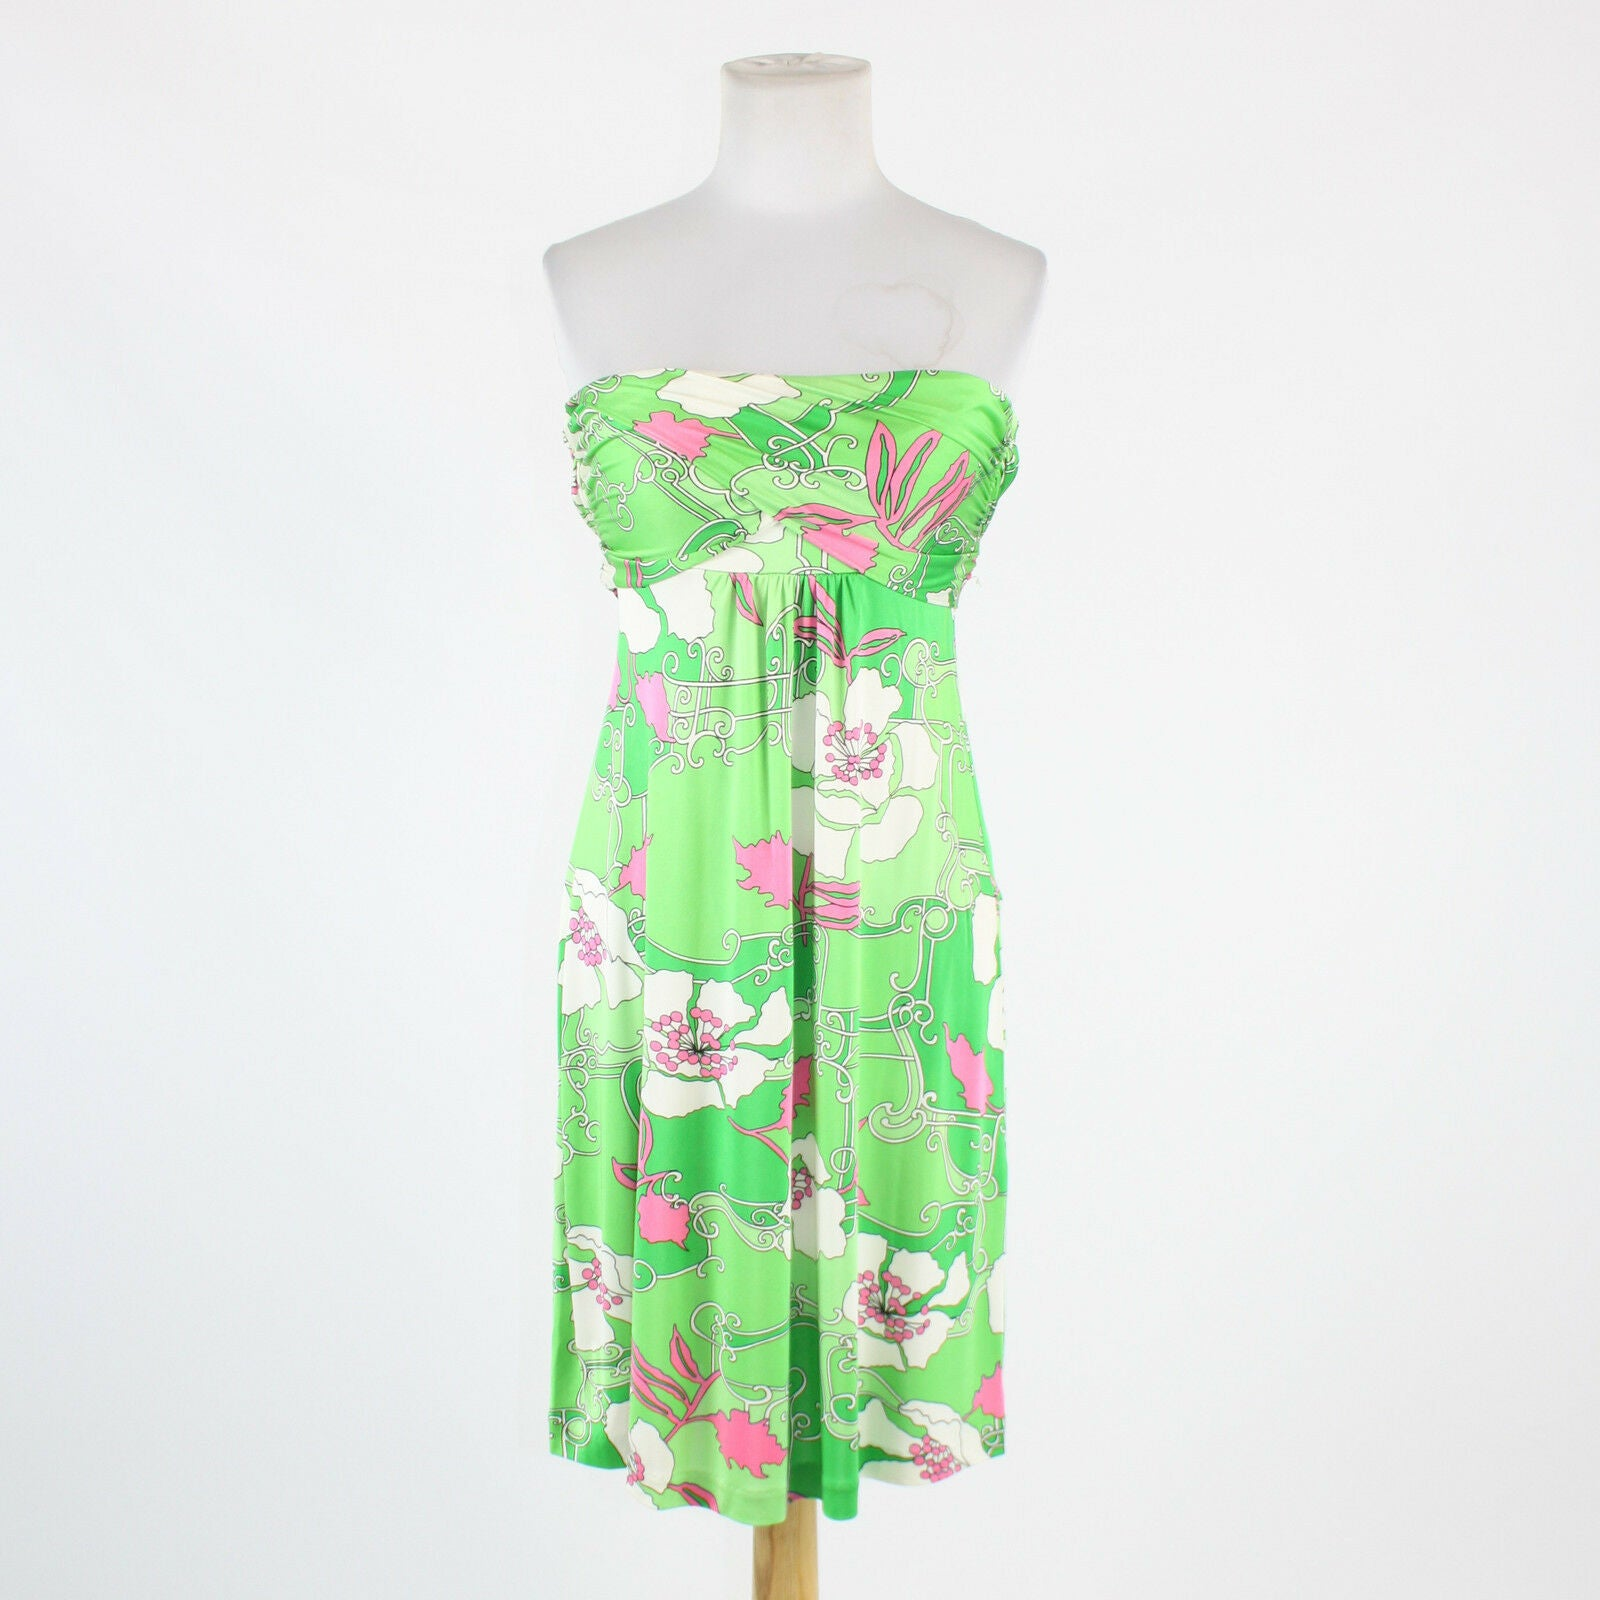 Green pink white floral 100% silk TIBI strapless knee-length tie waist dress XS-Newish